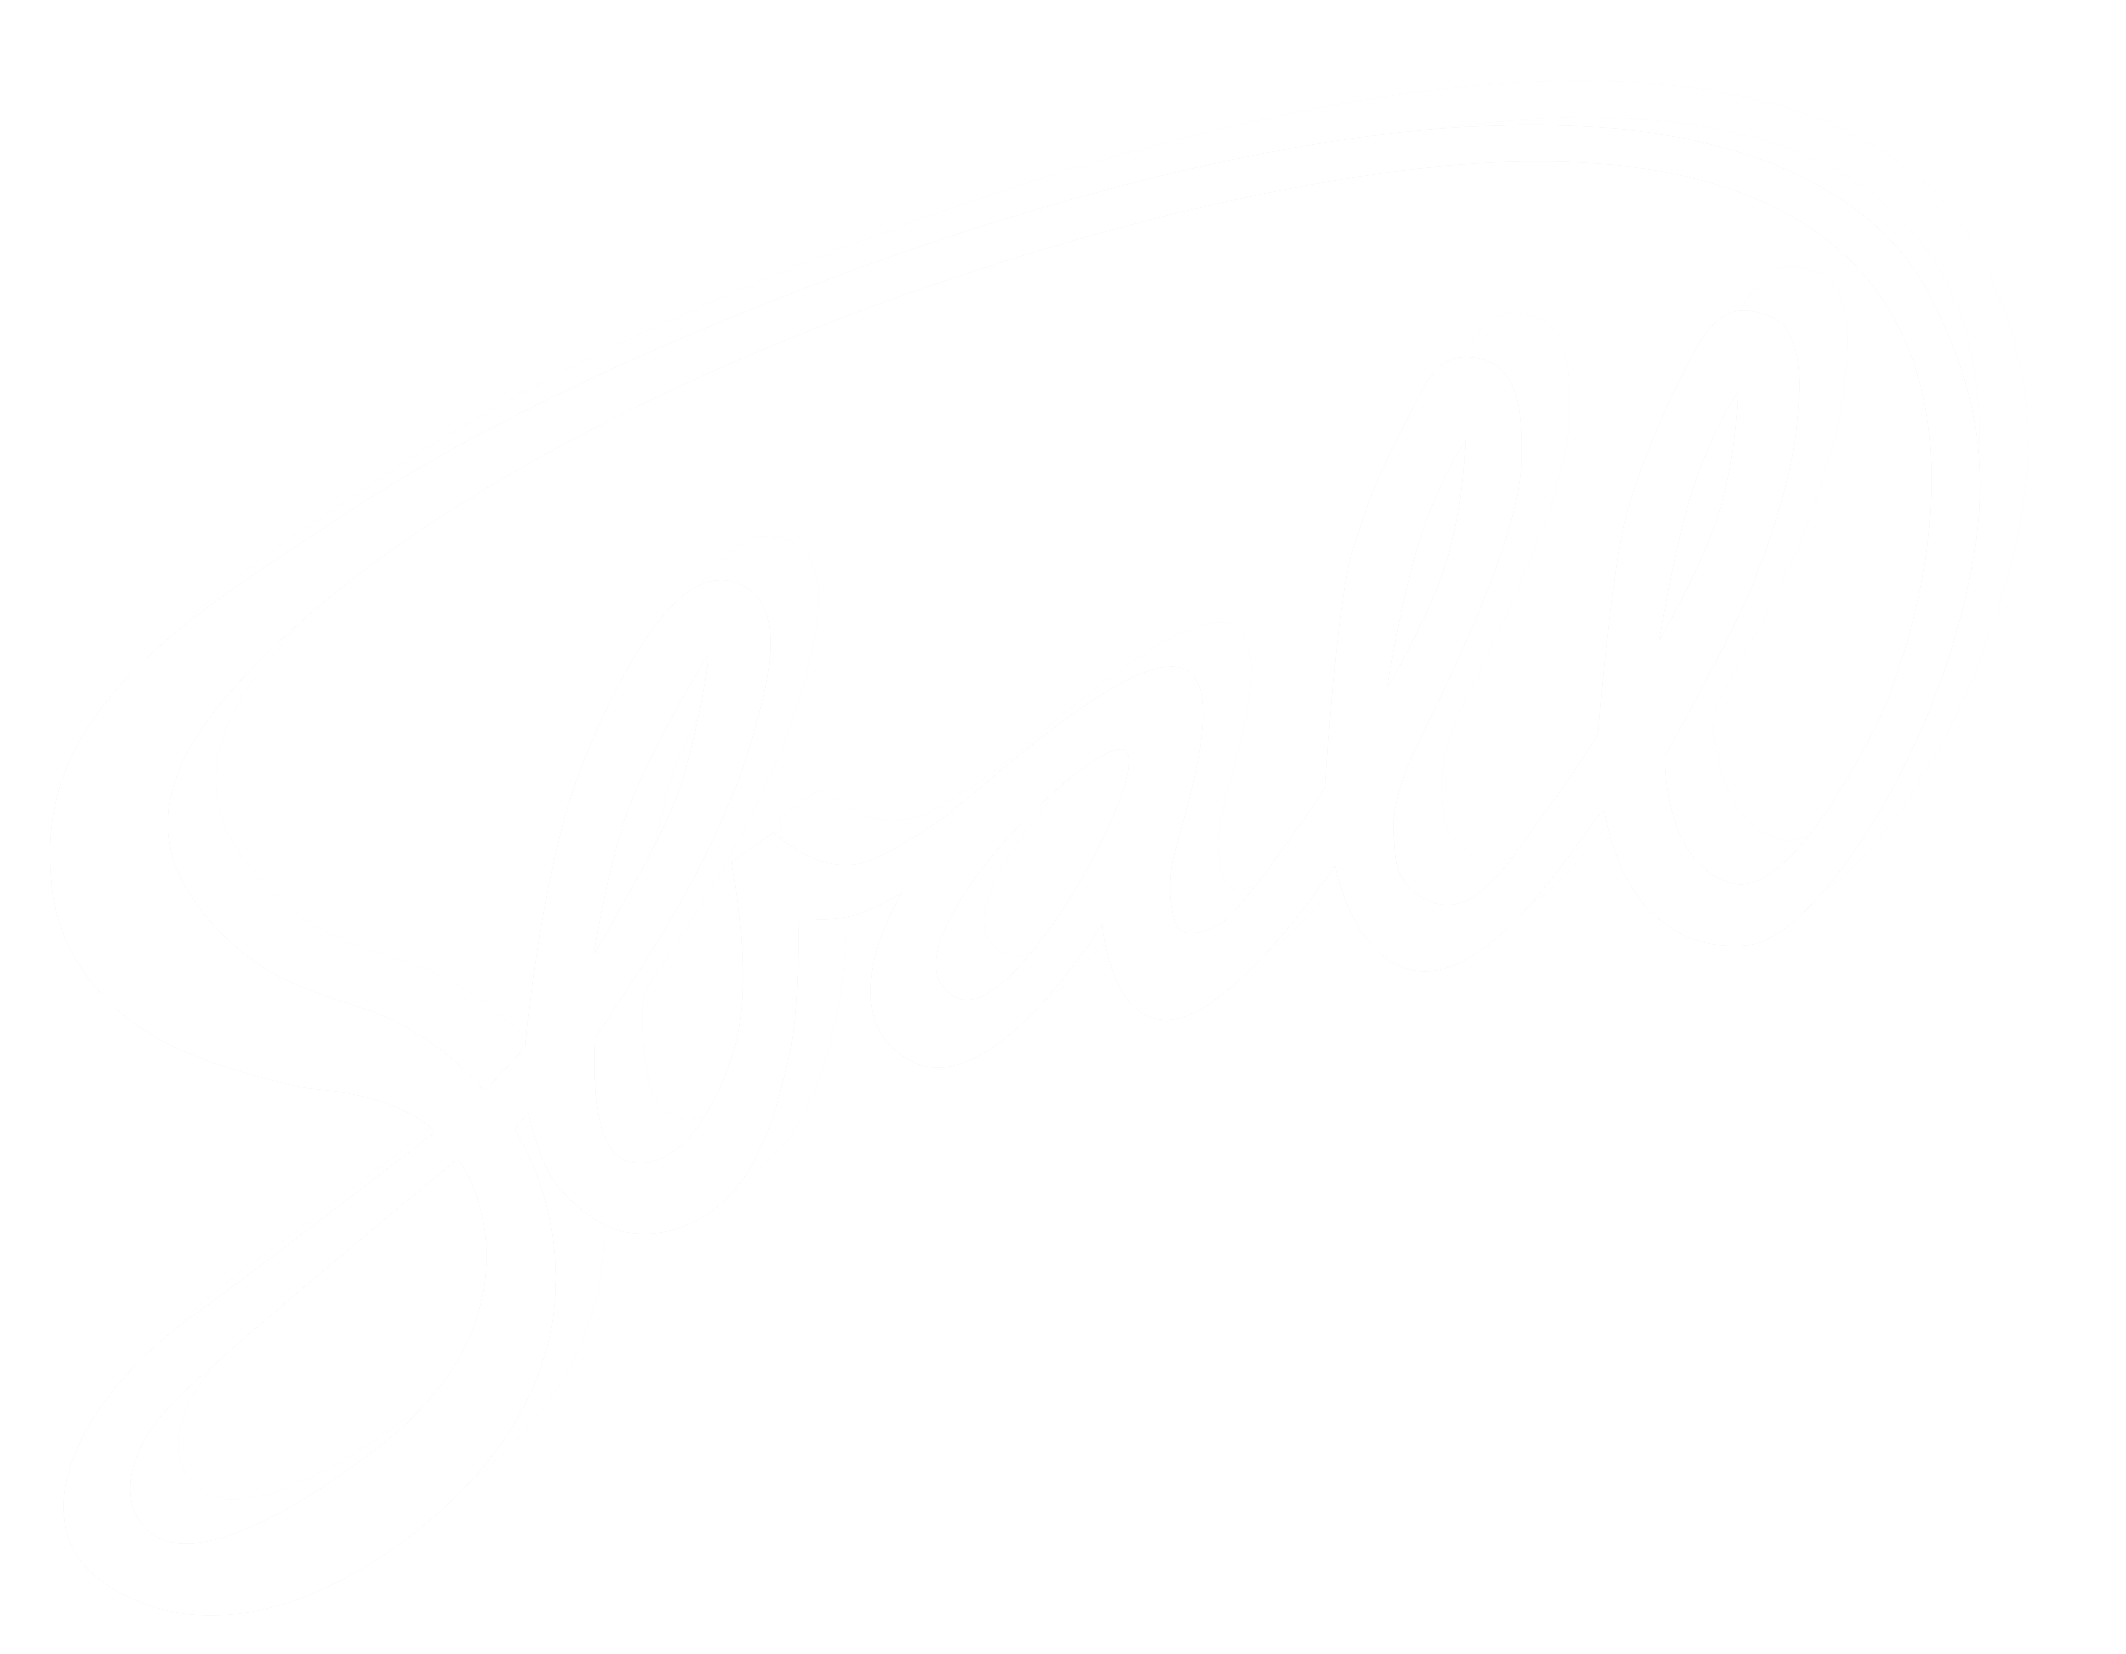 sball® therapy